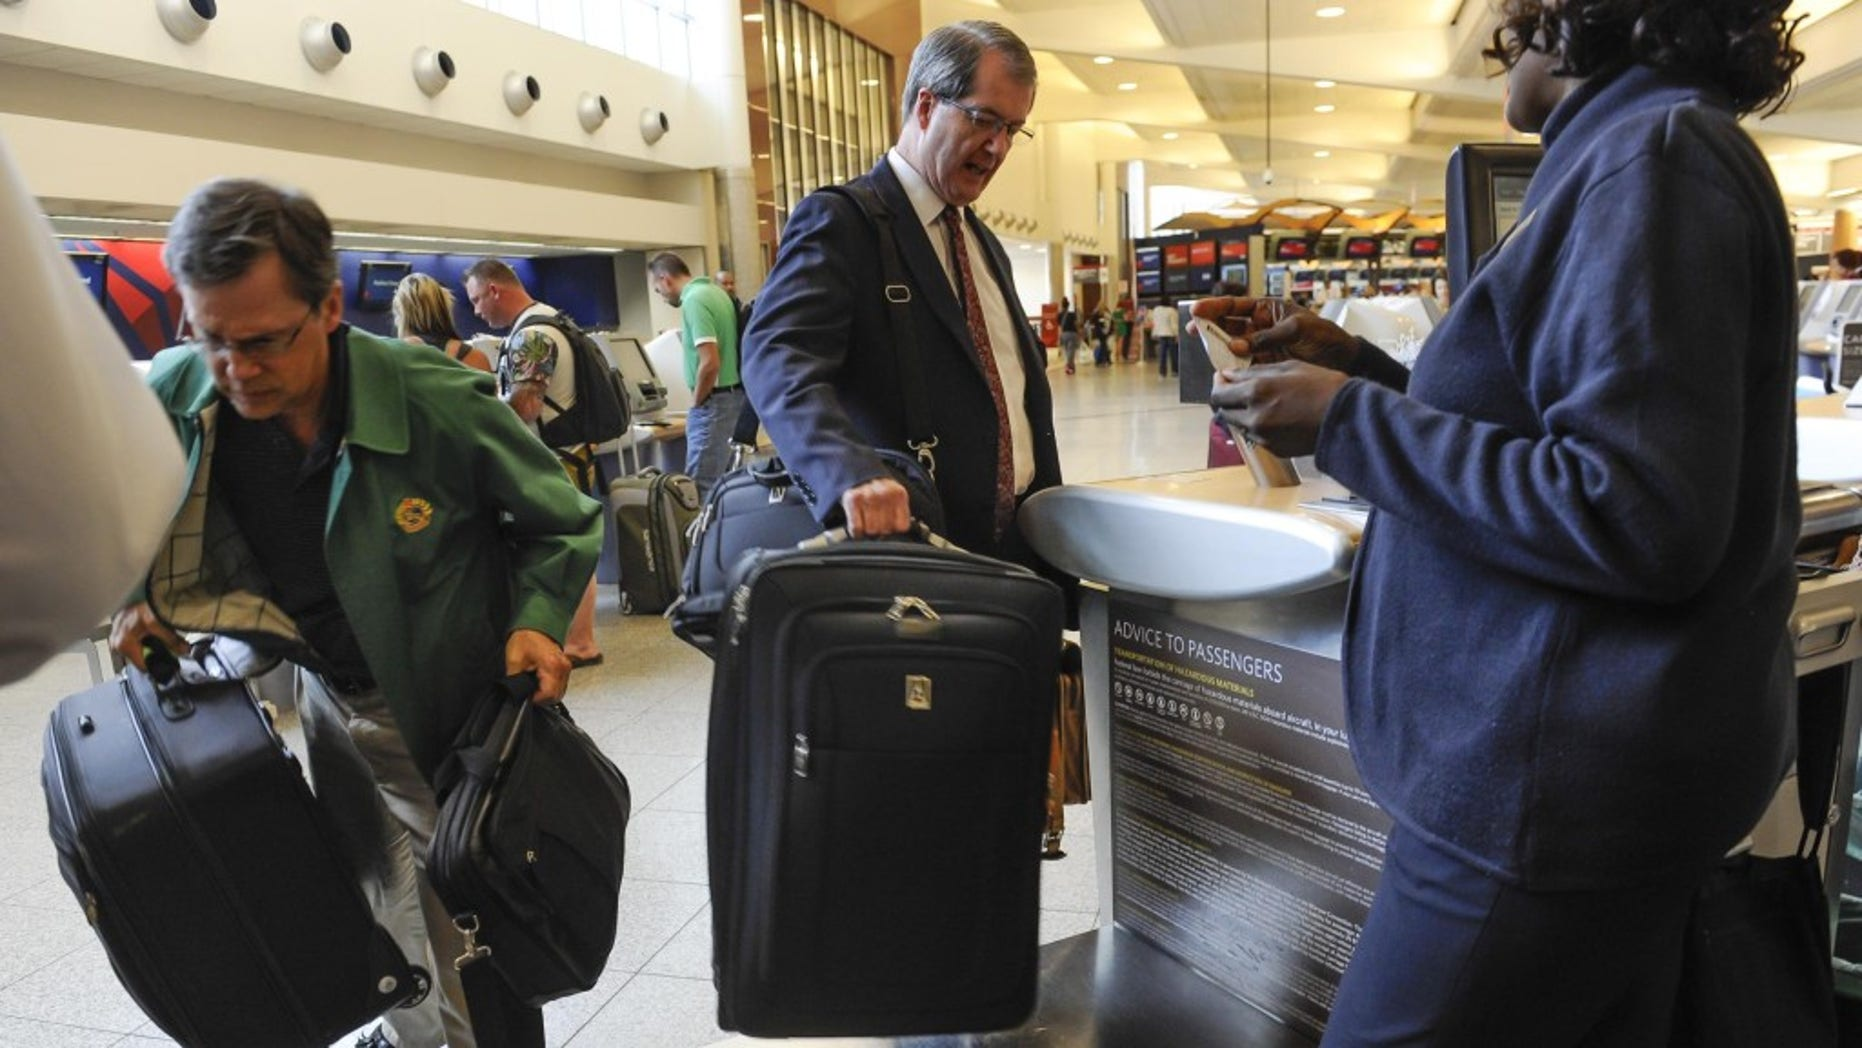 Atlanta Hartsfield Jackson International is still the world's busiest airport.